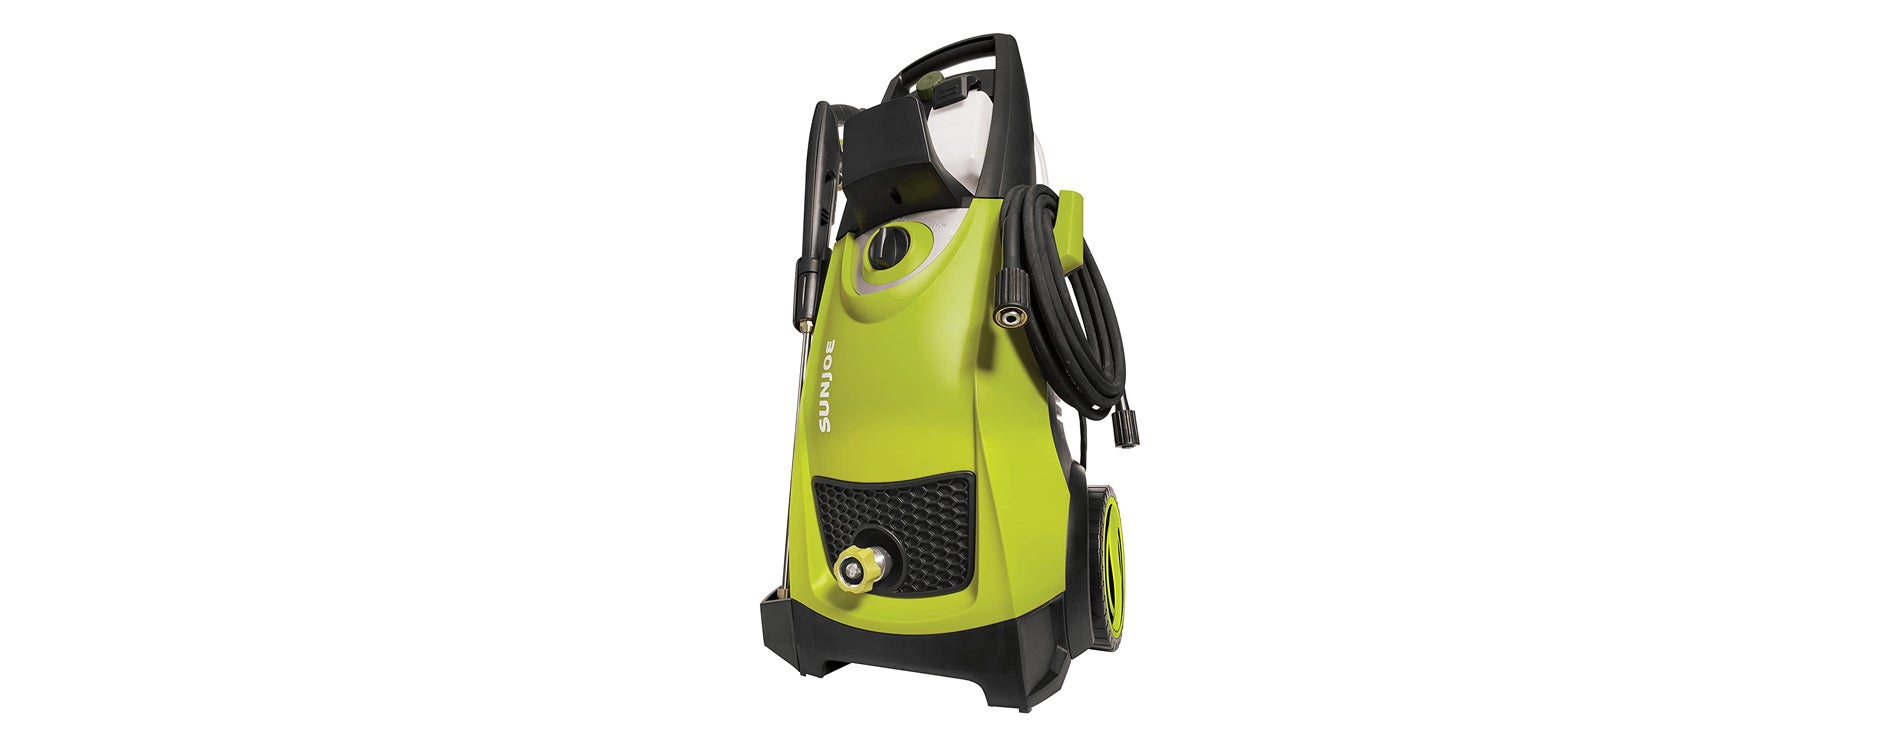 The Best Pressure Washers for Car Cleaning (Review & Buying Guide) in 2021